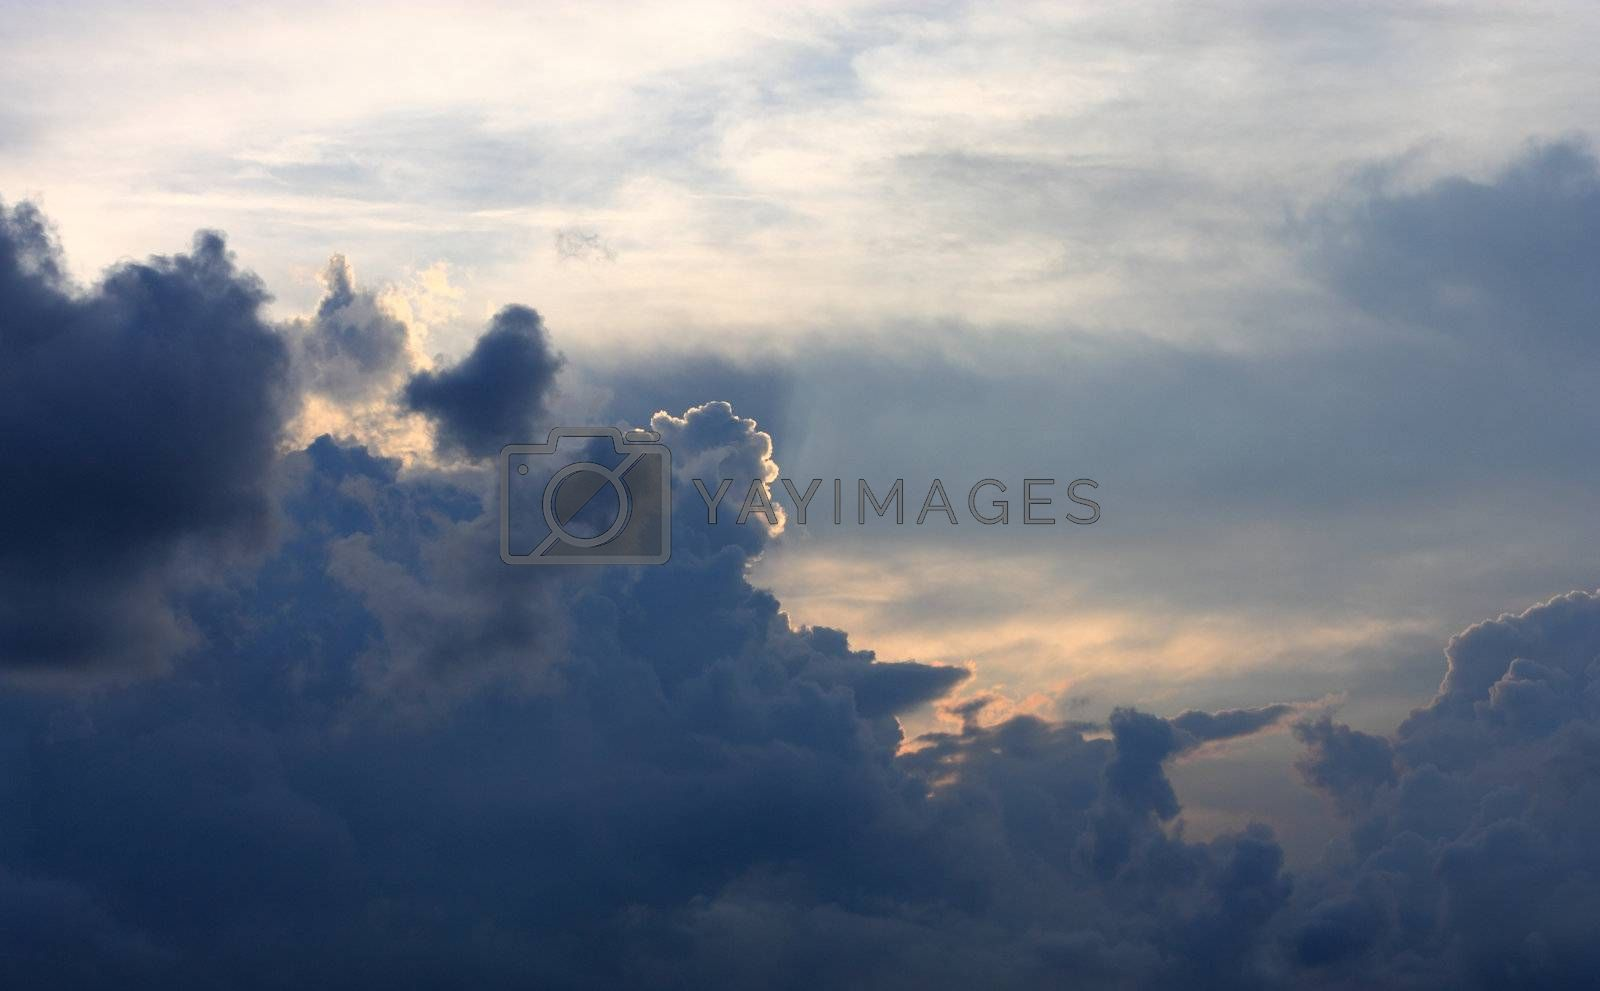 Royalty free image of sky with many clouds, after storm by leungchopan